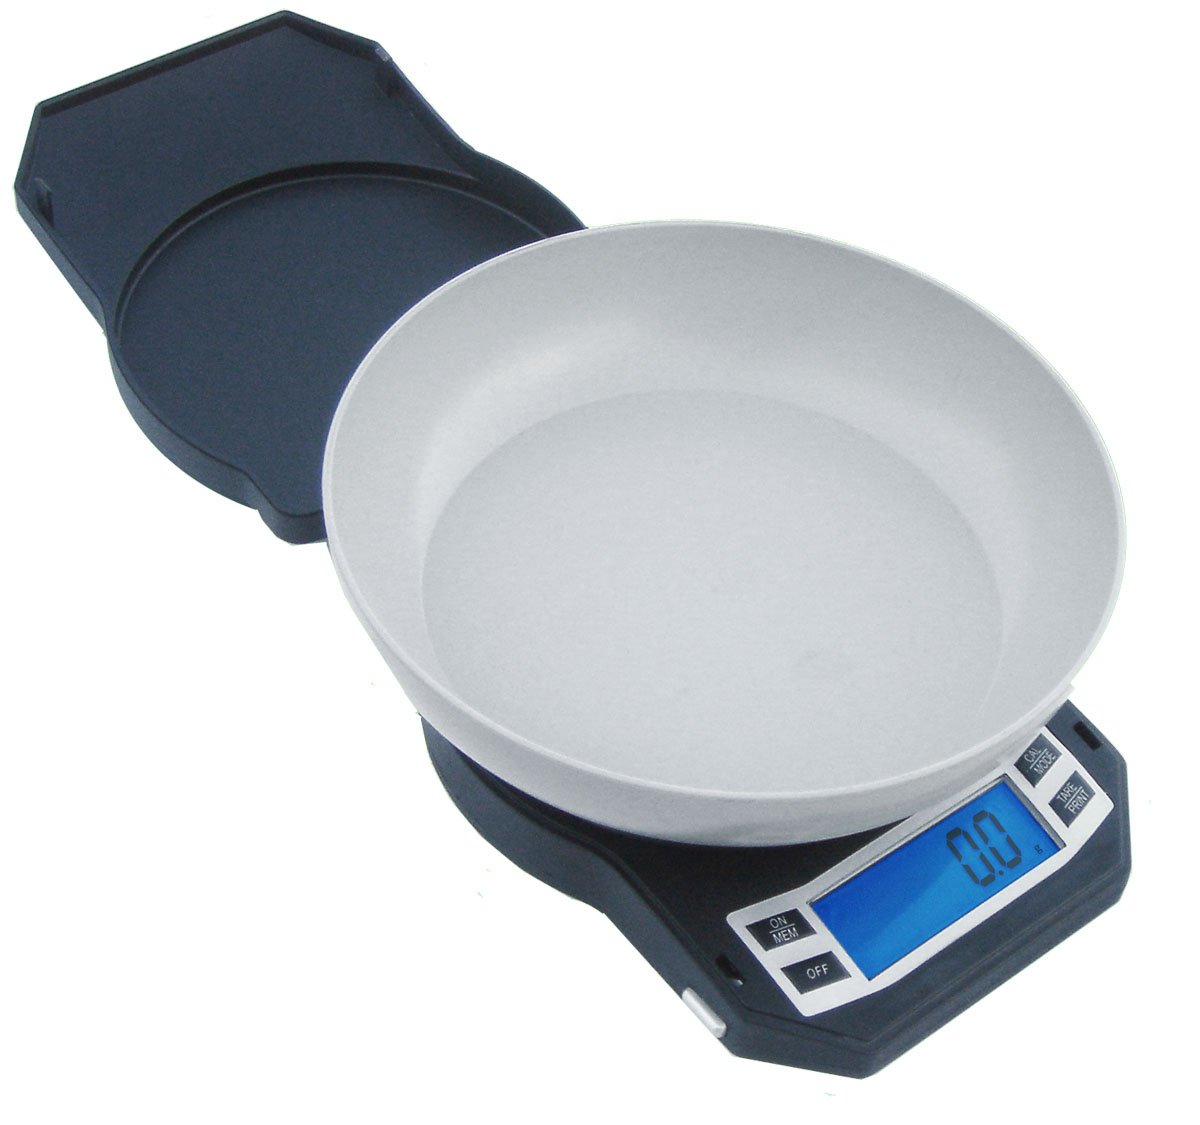 American Weigh Scales LB Series Digital Precision Weight Scale with Removable Bowl, 3000 x 0.1 G (LB-3000) by AMERICAN WEIGH SCALES